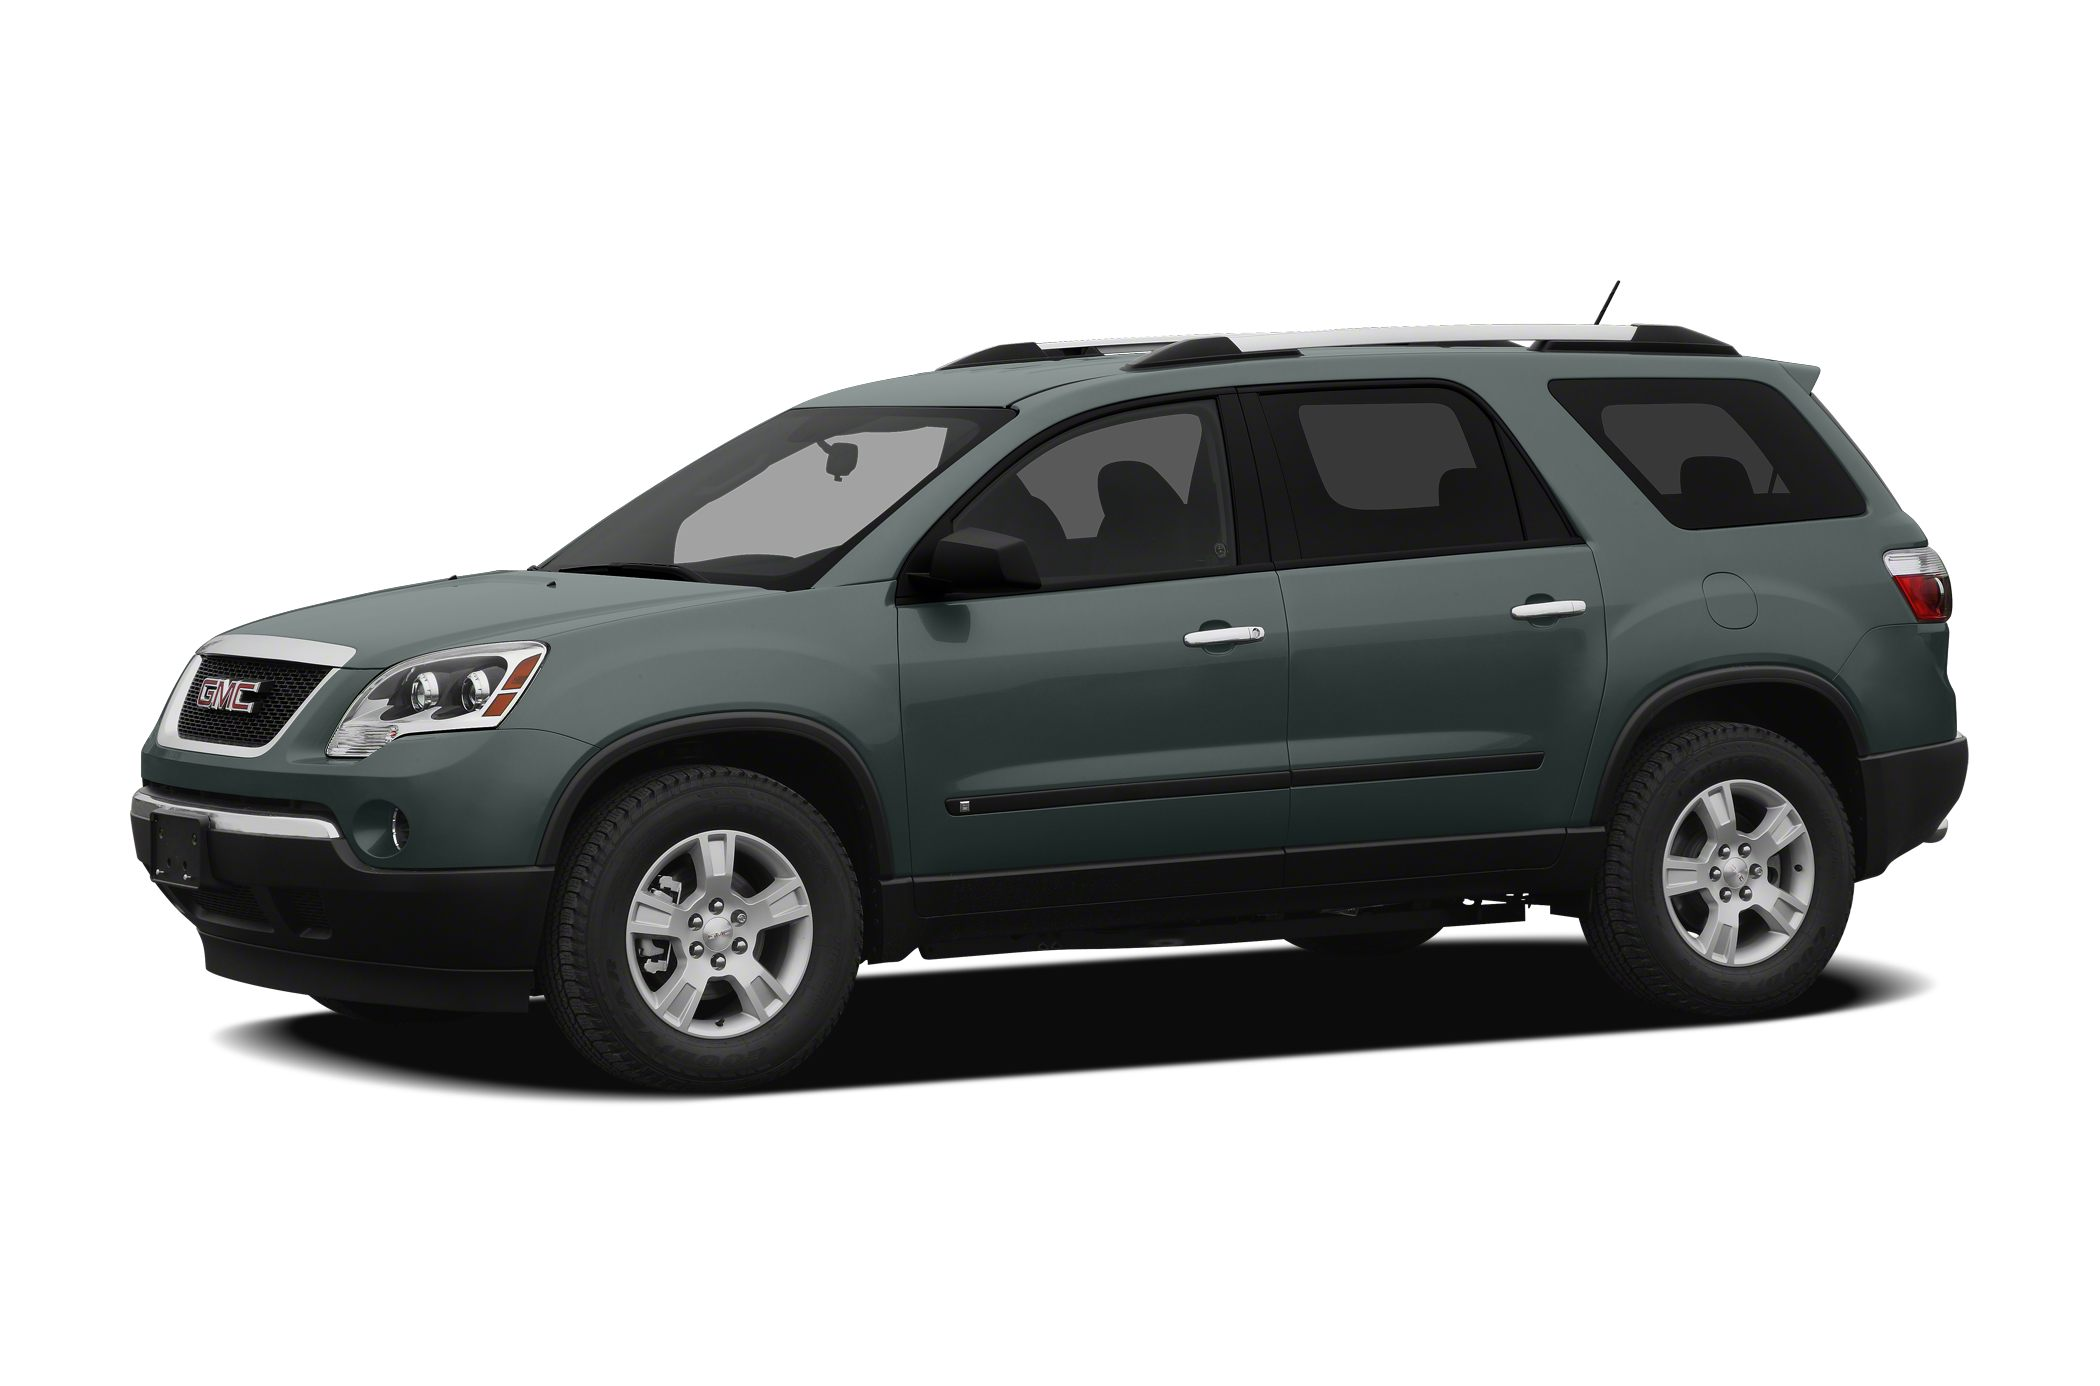 2009 GMC Acadia SLT-2 ITS OUR 50TH ANNIVERSARY HERE AT MARTYS AND TO CELEBRATE WERE OFFERING THE